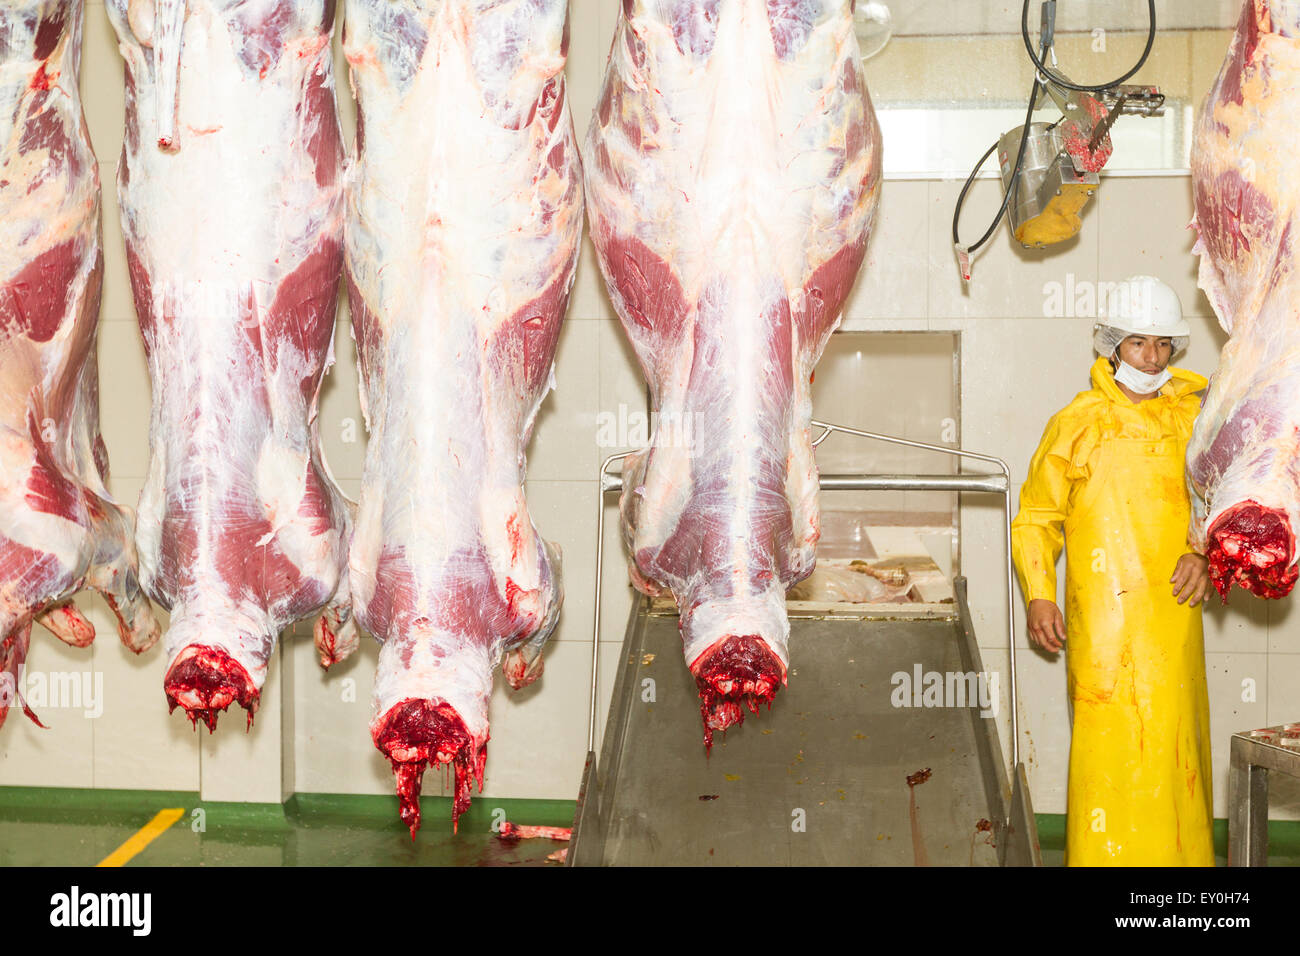 Butcher And Cow Carcasses On The Production Line Interior Of Slaughterhouse Stock Photo